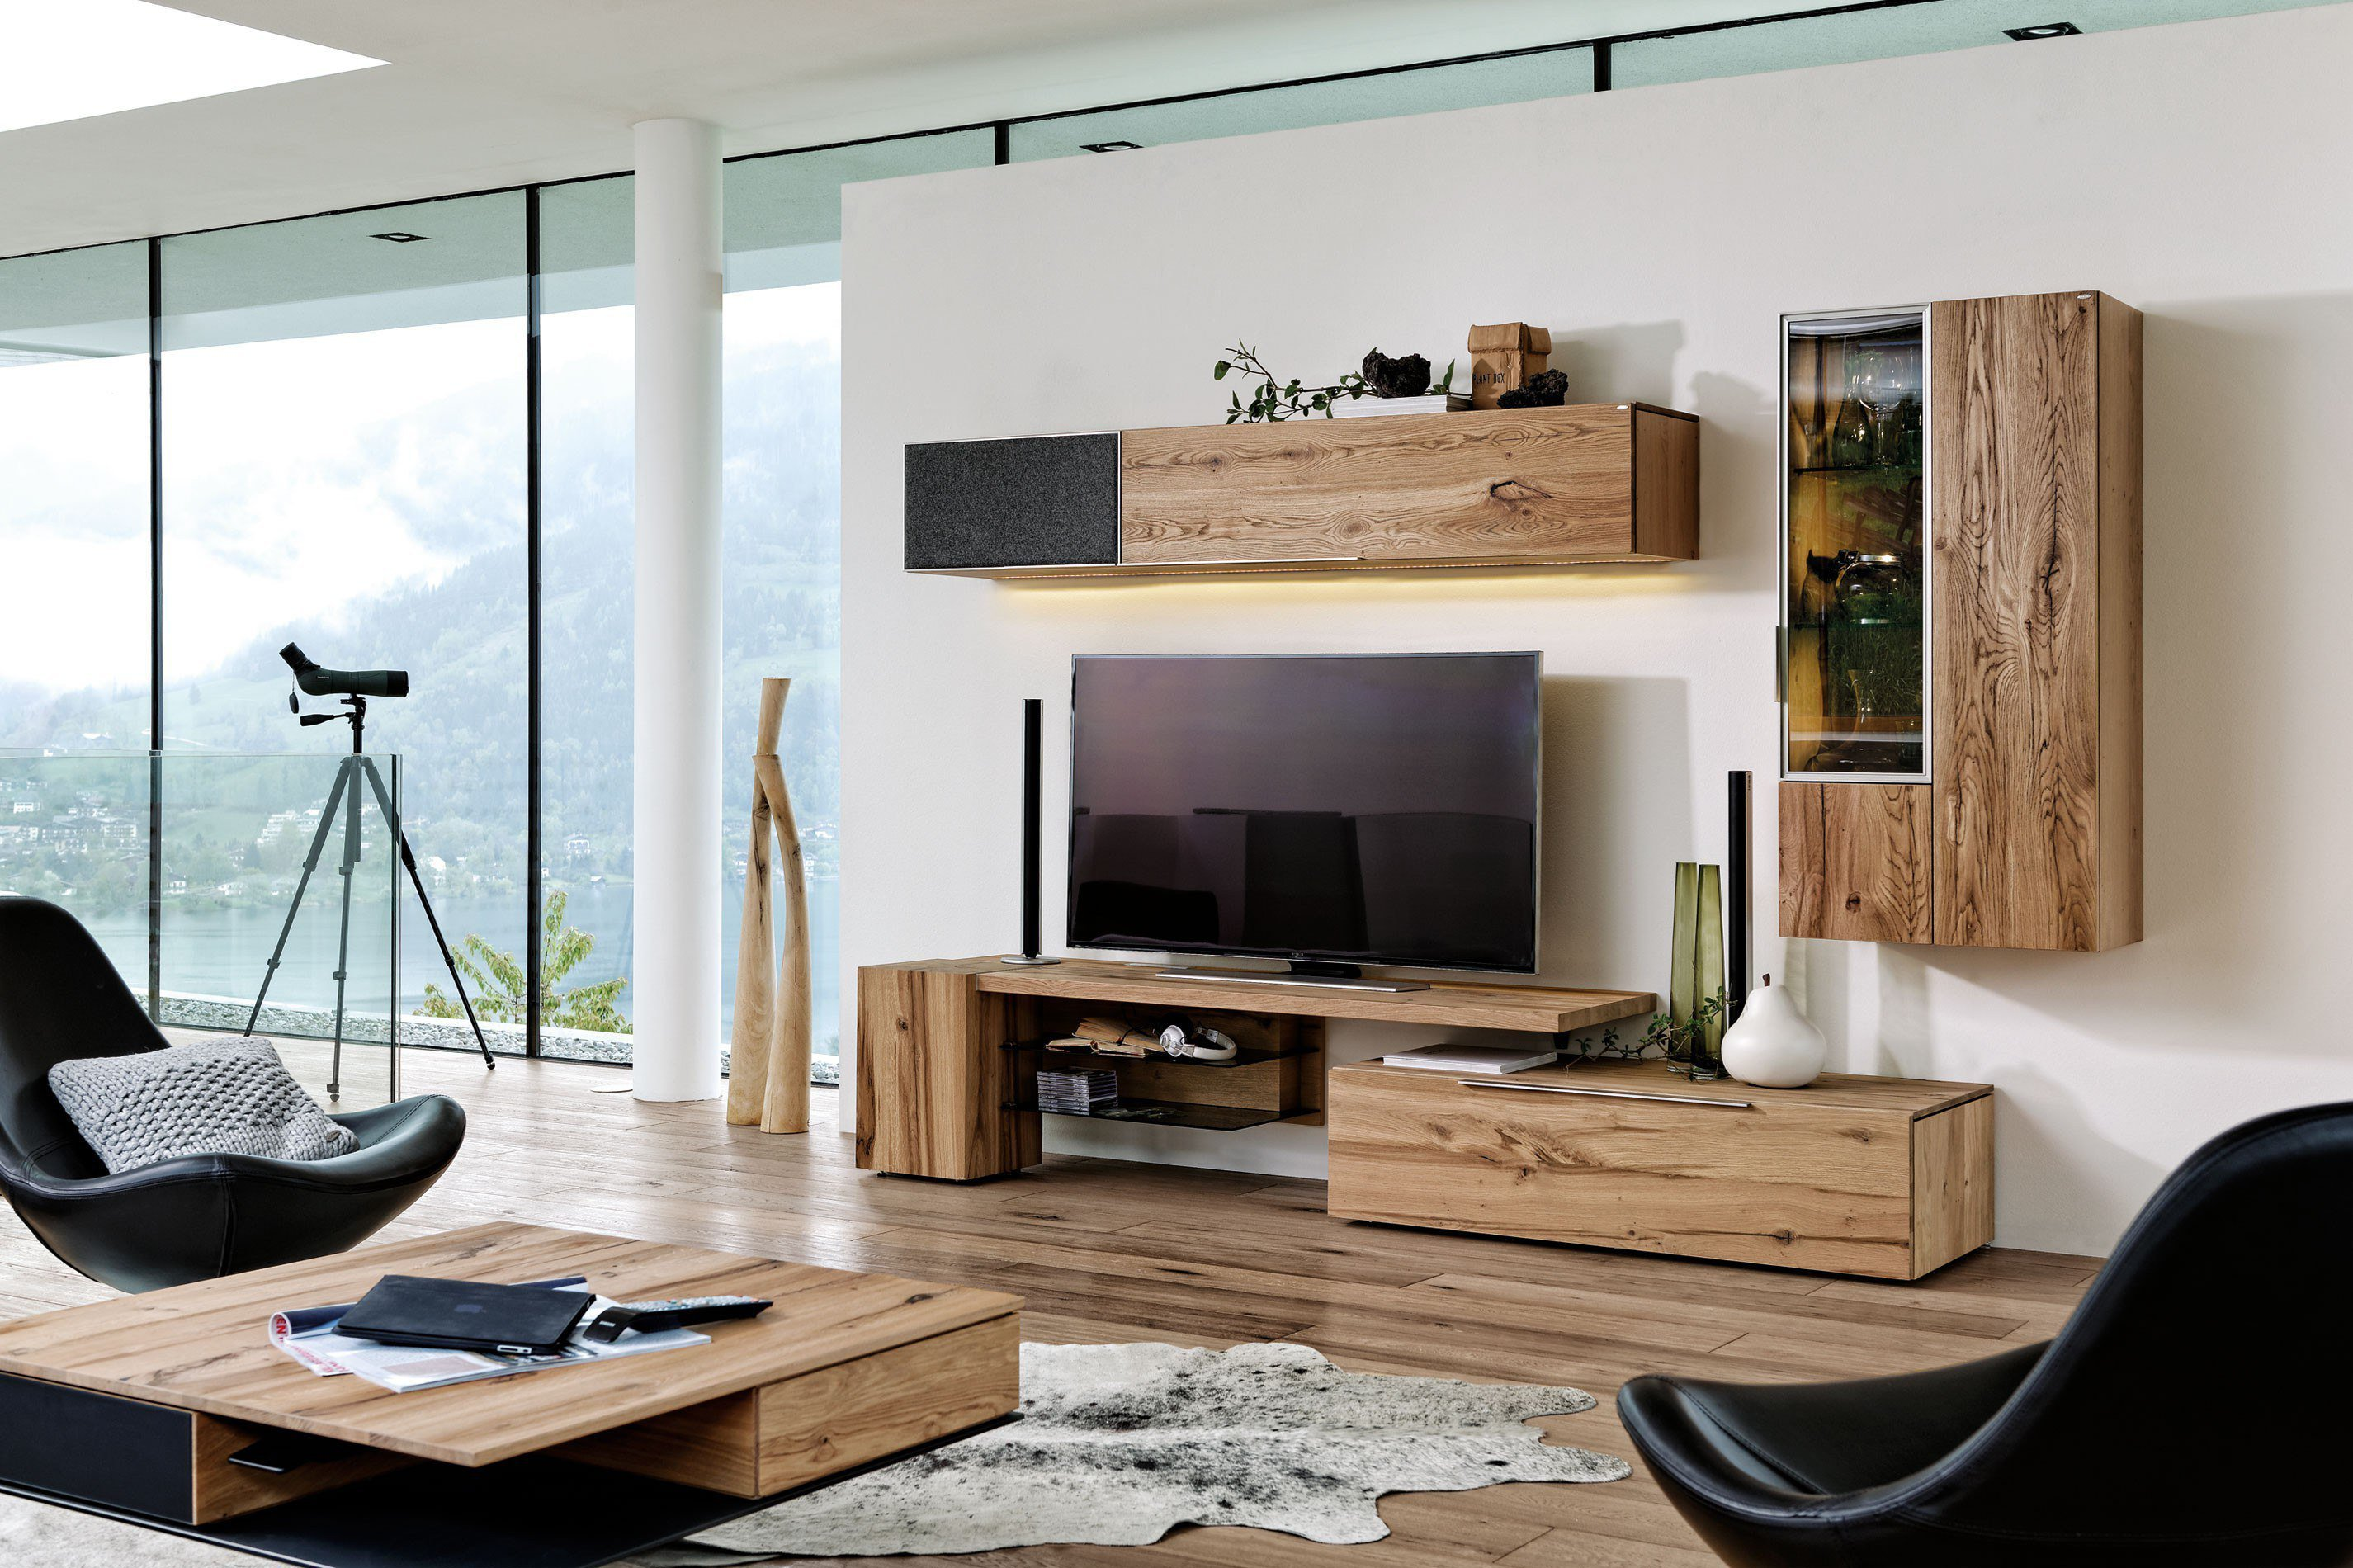 voglauer wohnwand v alpin 140 eiche loden grau m bel letz ihr online shop. Black Bedroom Furniture Sets. Home Design Ideas